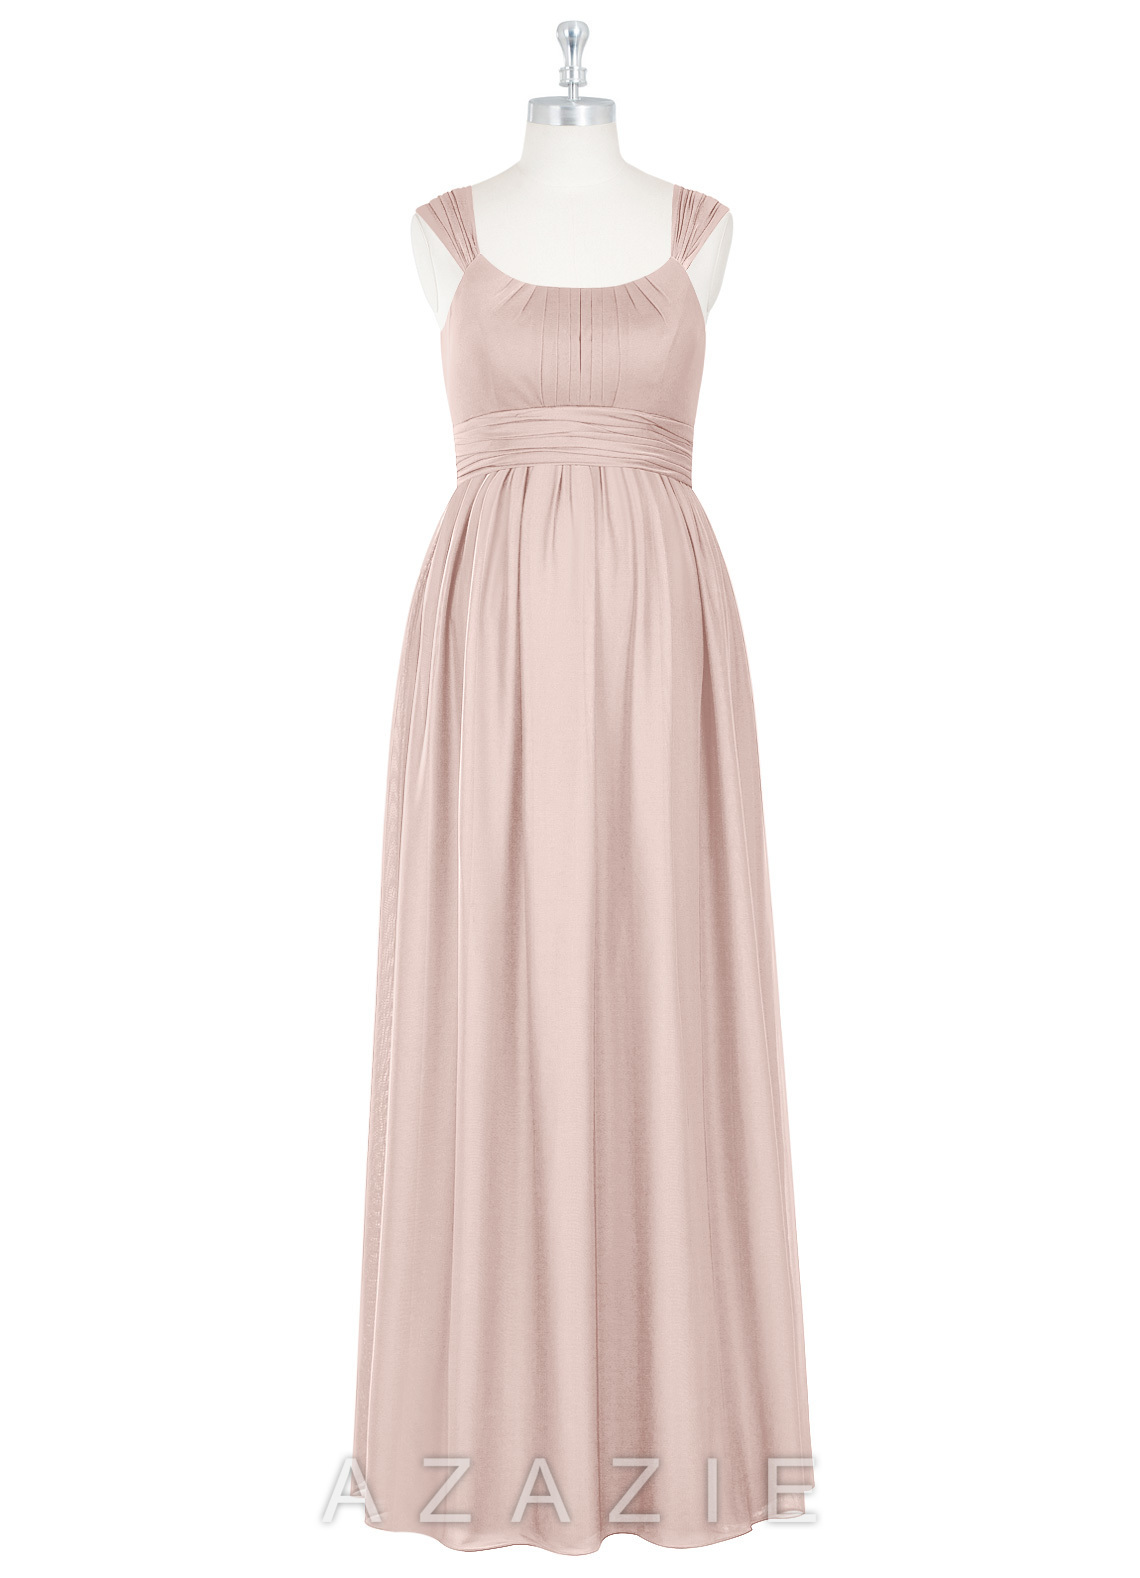 41408774ad7f8 Azazie Melanie Maternity Bridesmaid Dress | Azazie